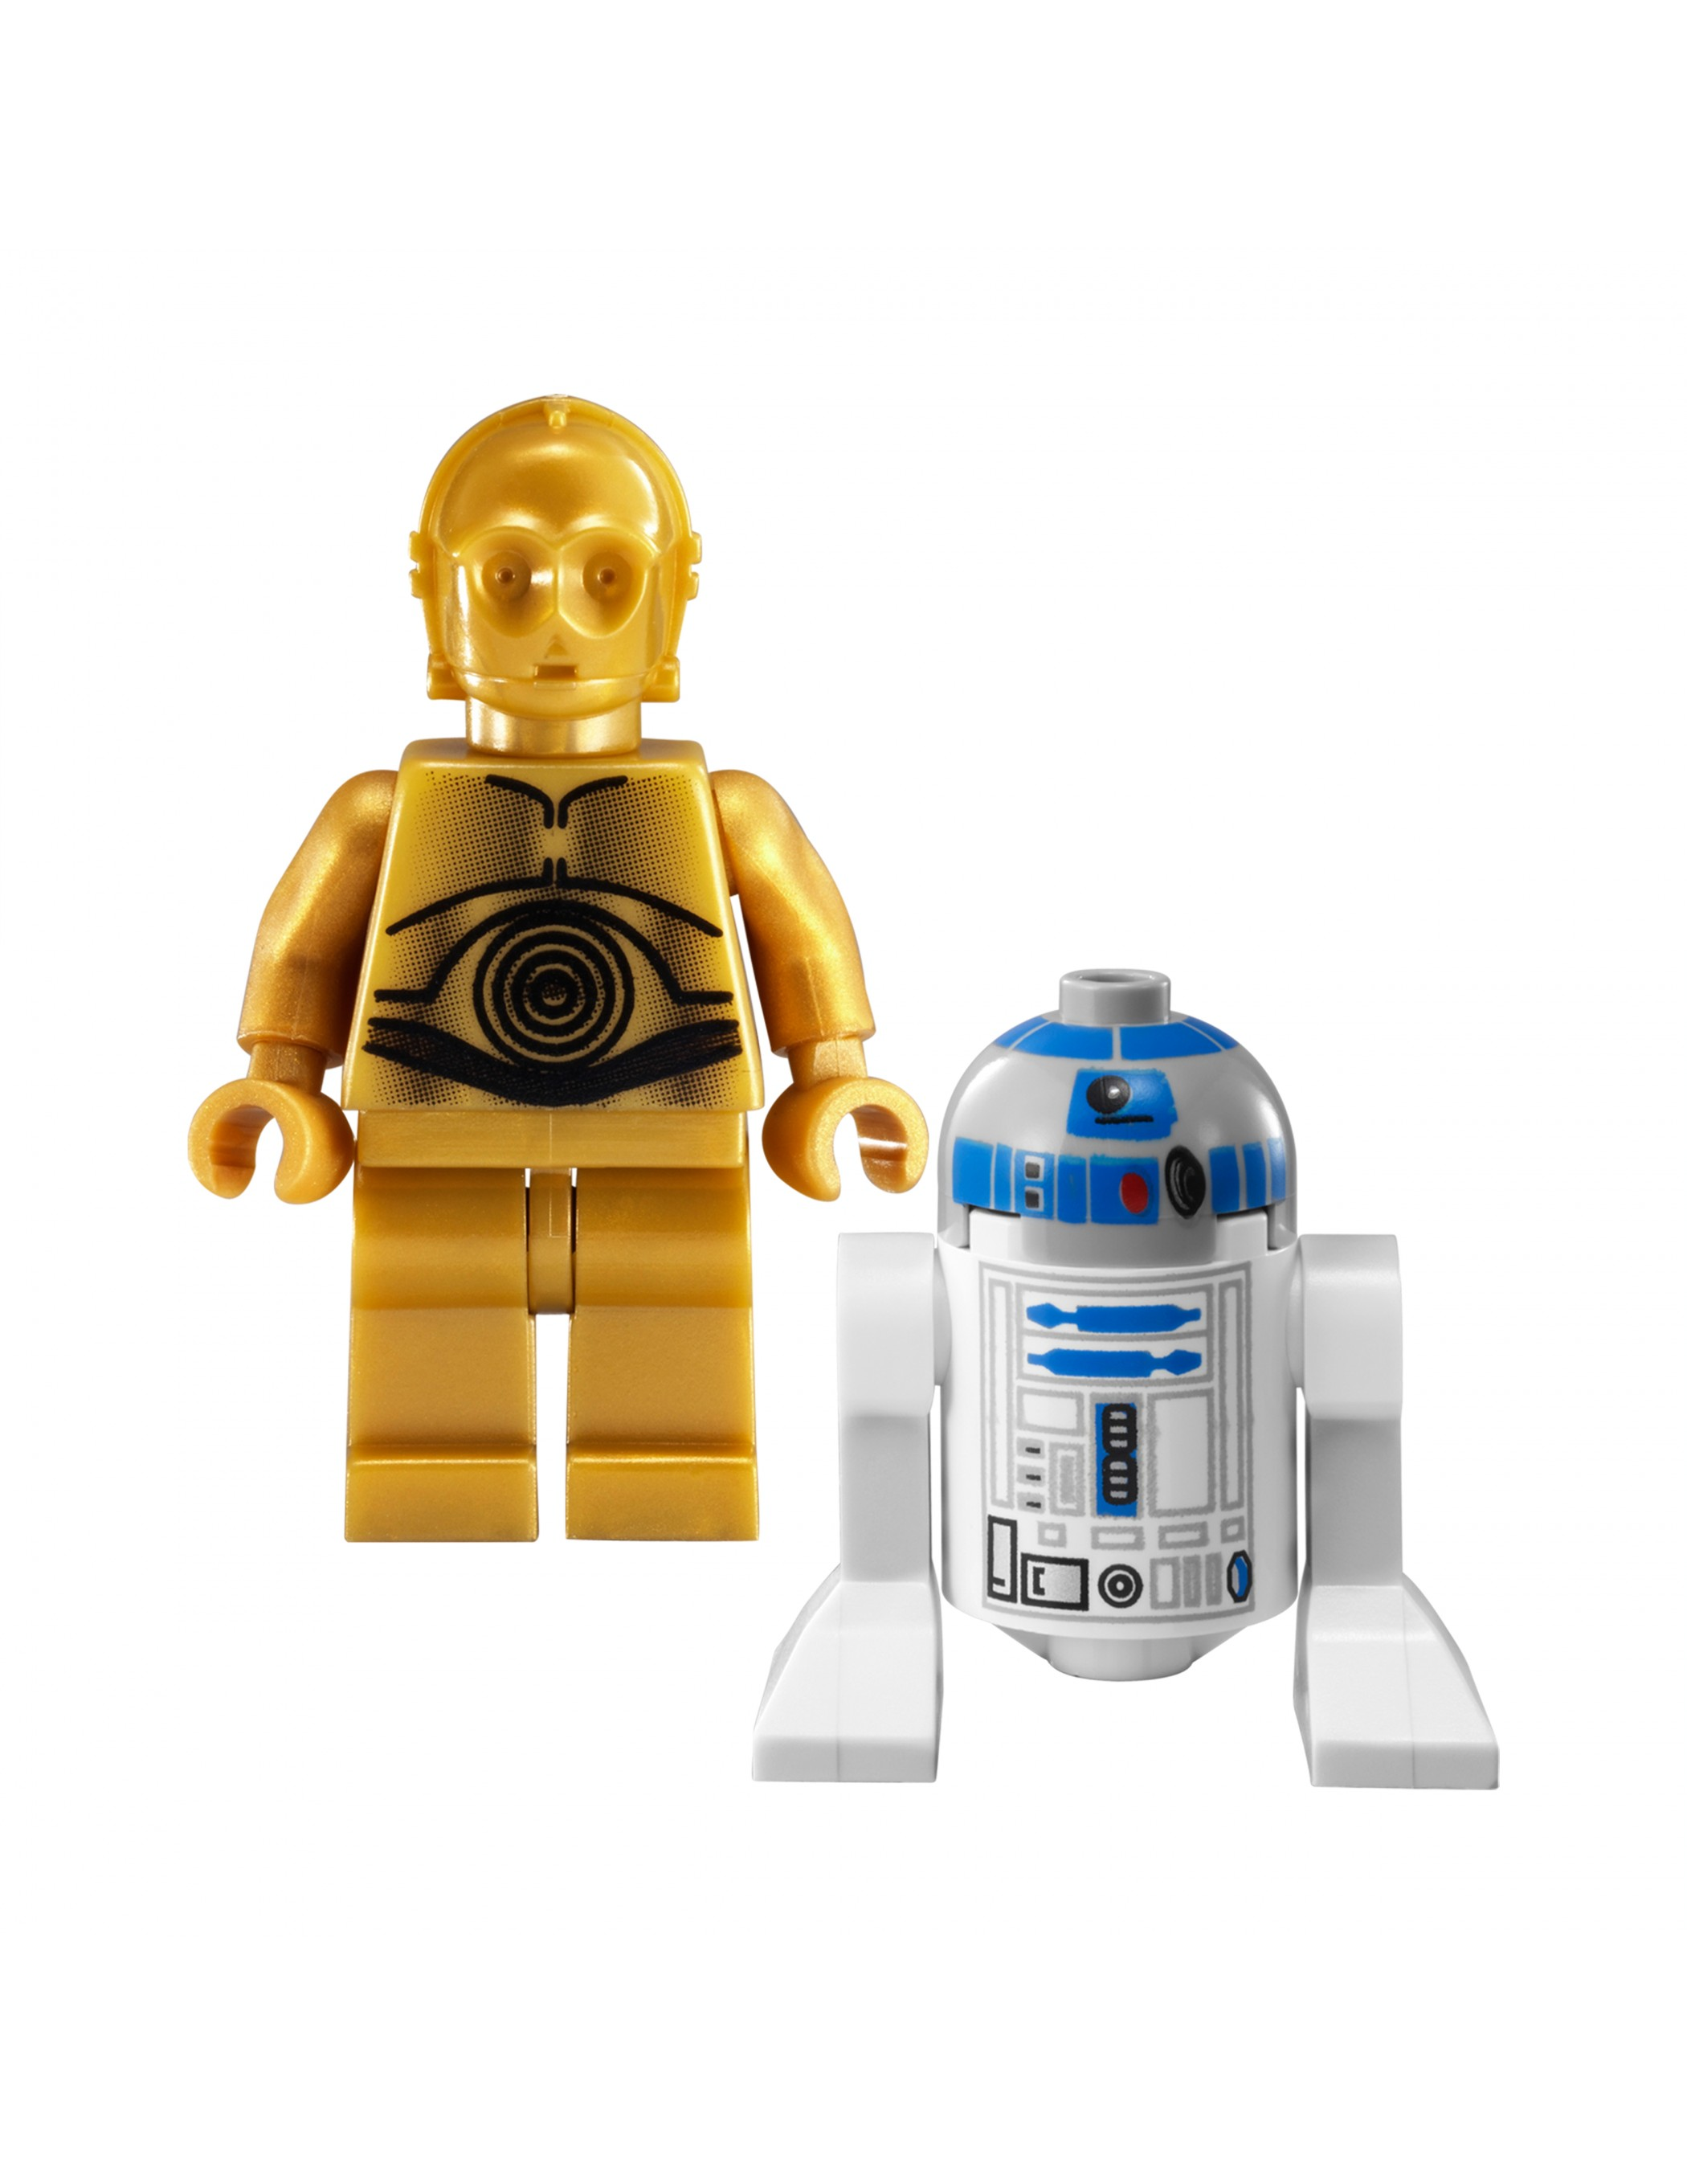 Lego star wars c 3po and r2 d2 watch bundle with minifigure best educational infant toys - Lego starwars r2d2 ...